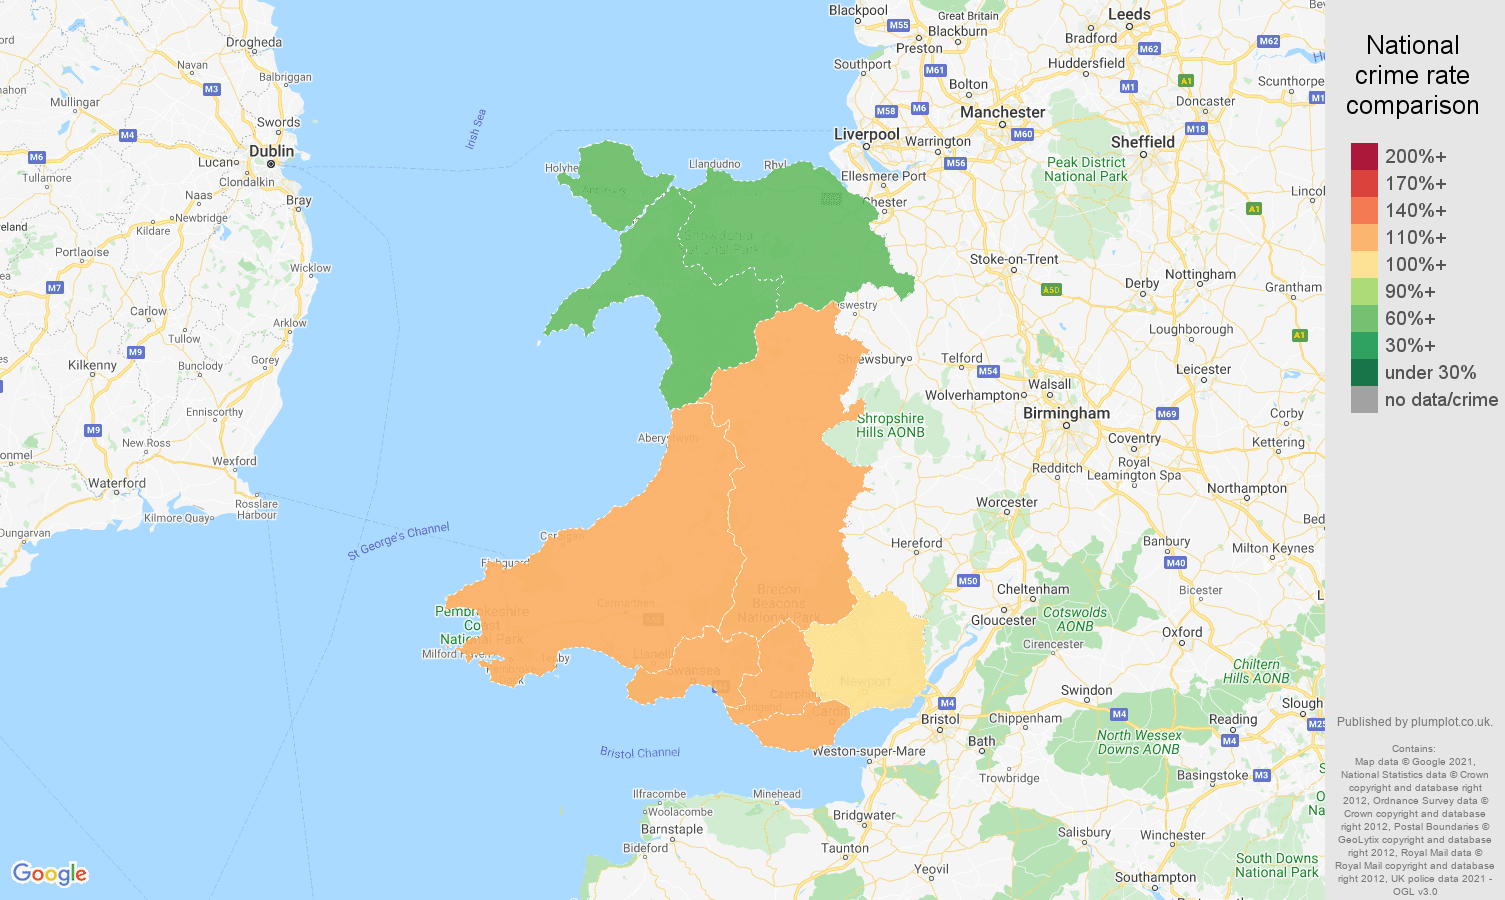 Wales drugs crime rate comparison map